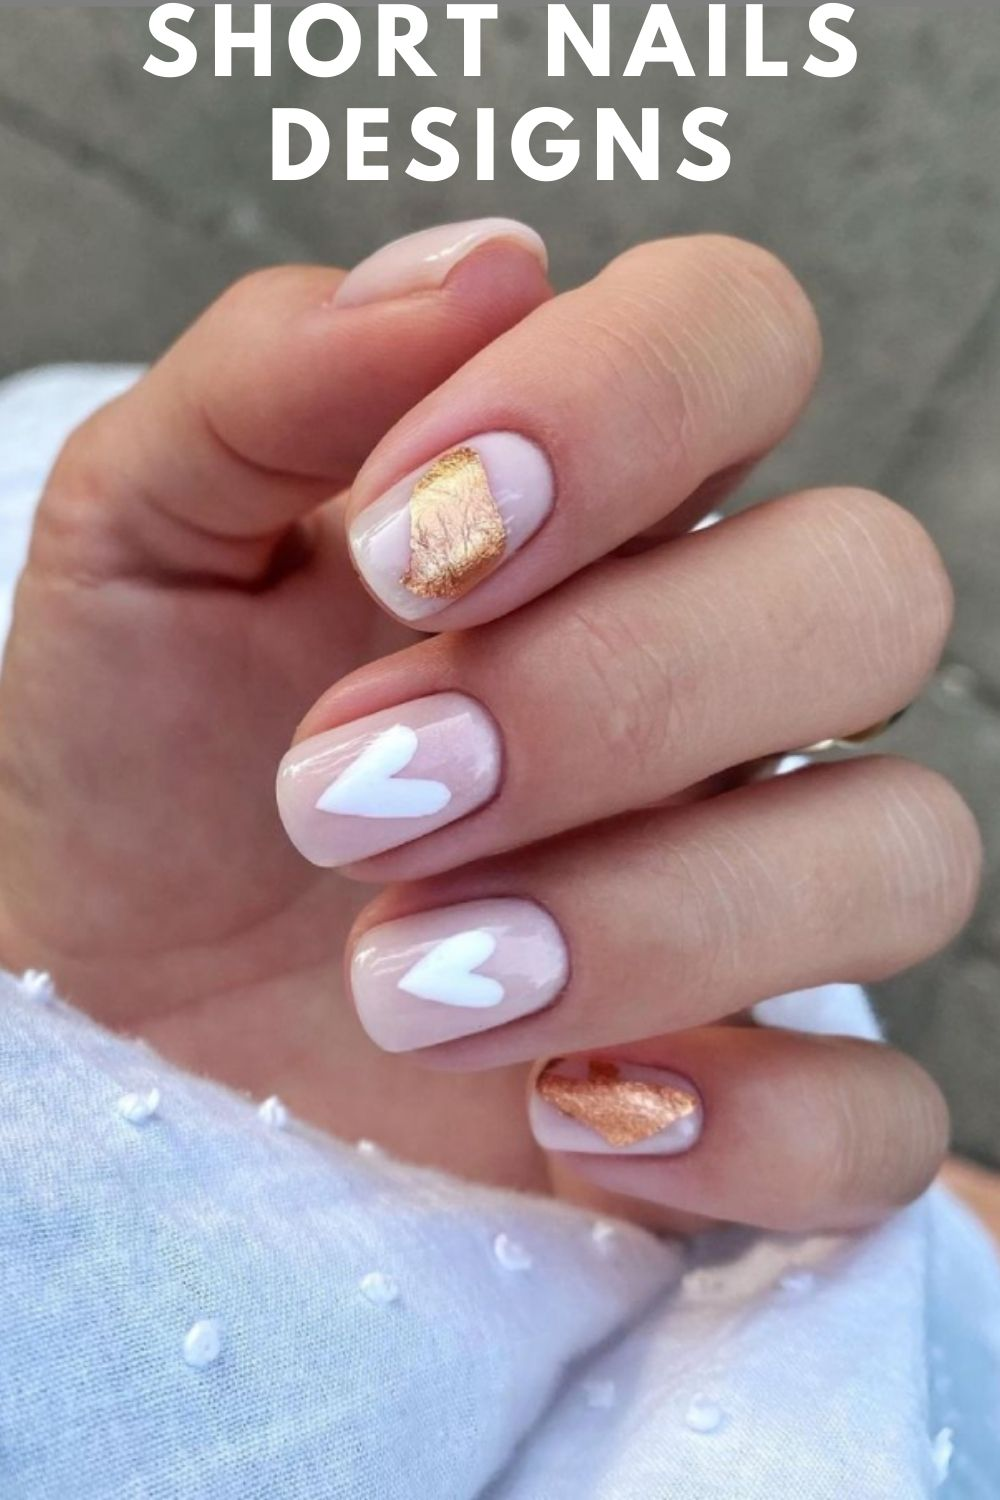 Pink and gold short nail designs with heart